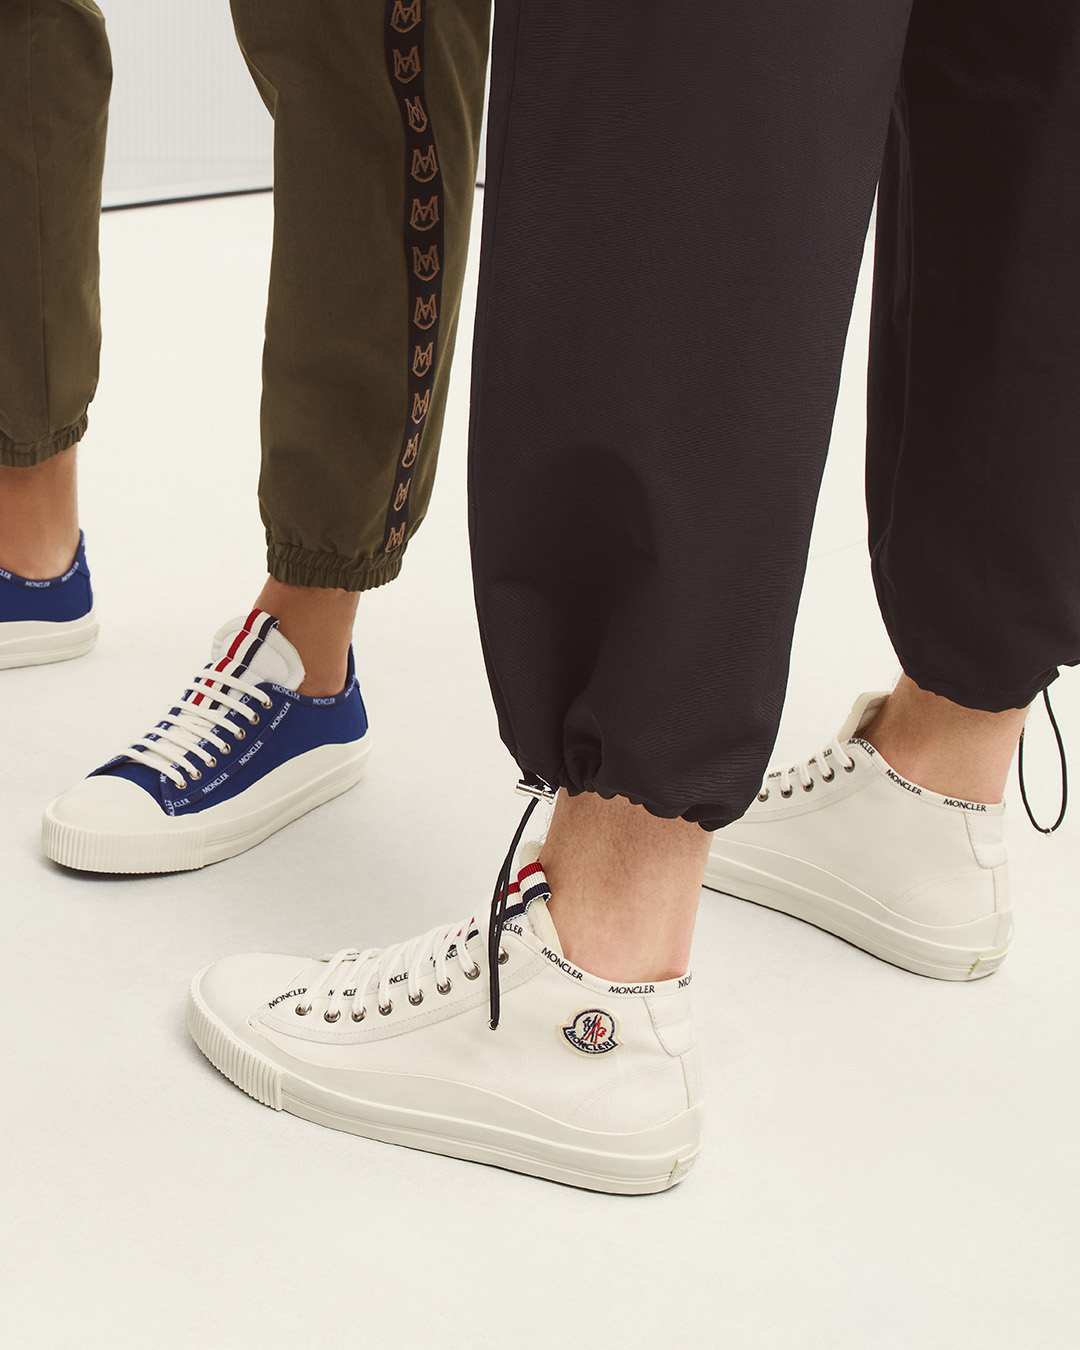 New range of sneakers with city smart vulcanized soles from Moncler